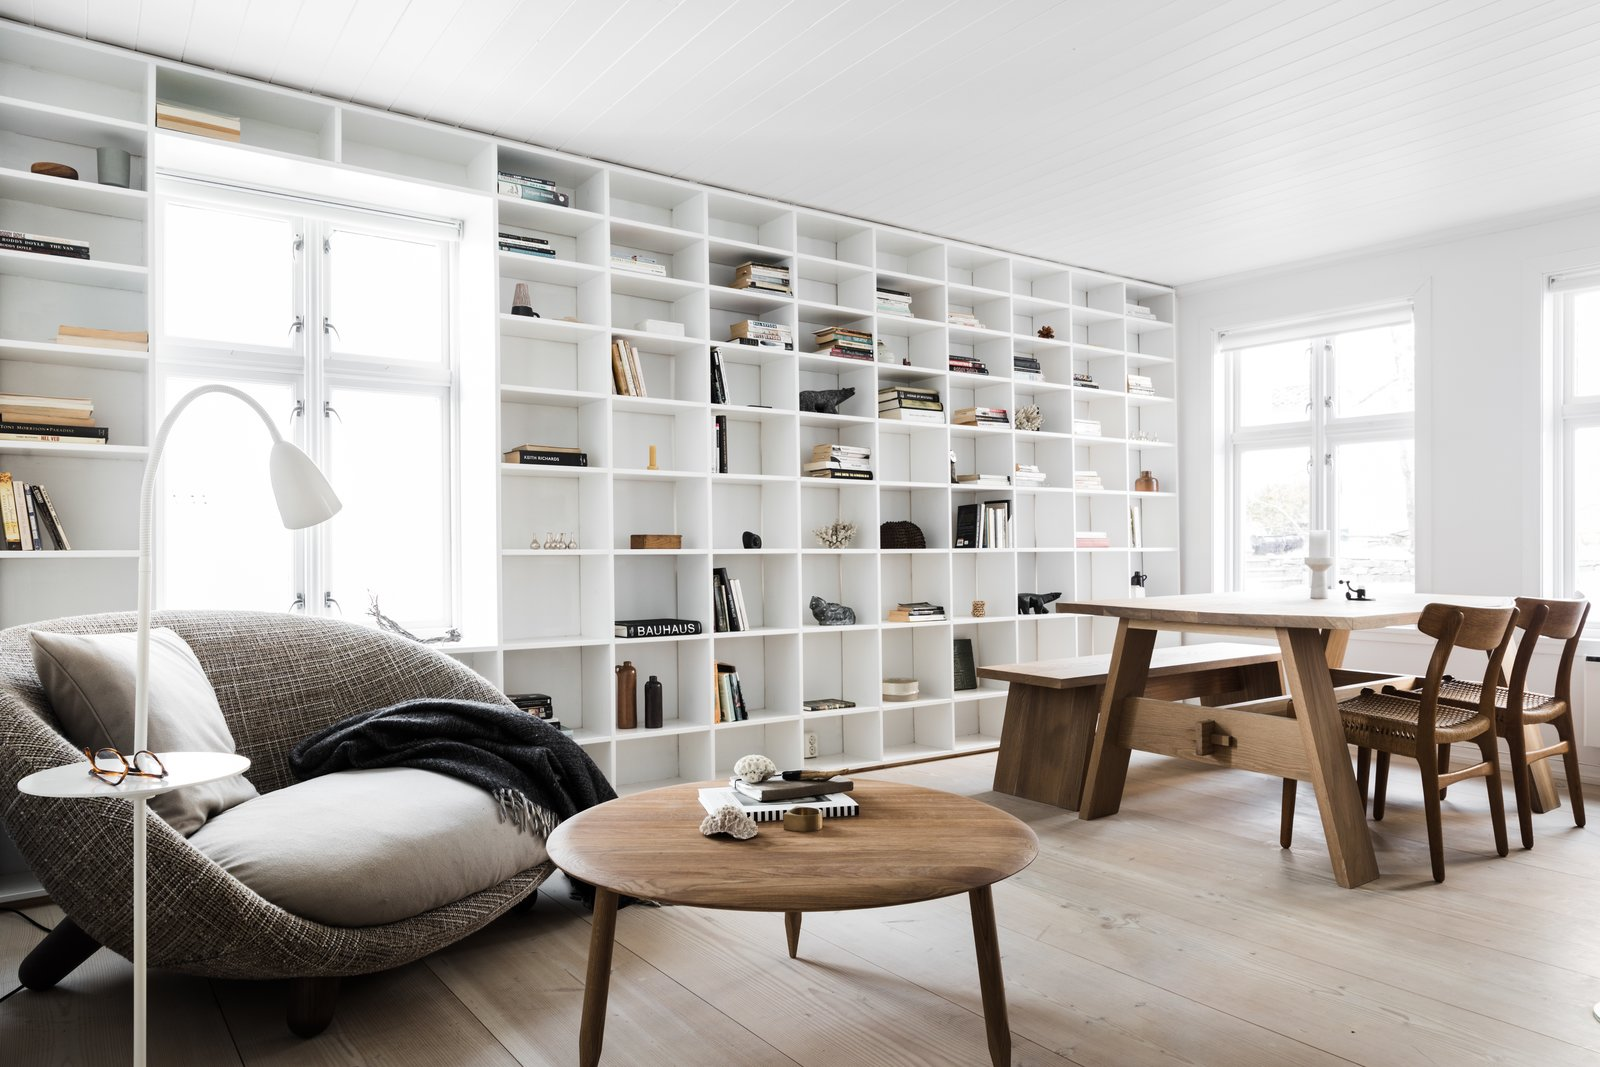 An 18th-Century Townhouse Is Now a Chic Norwegian Rental